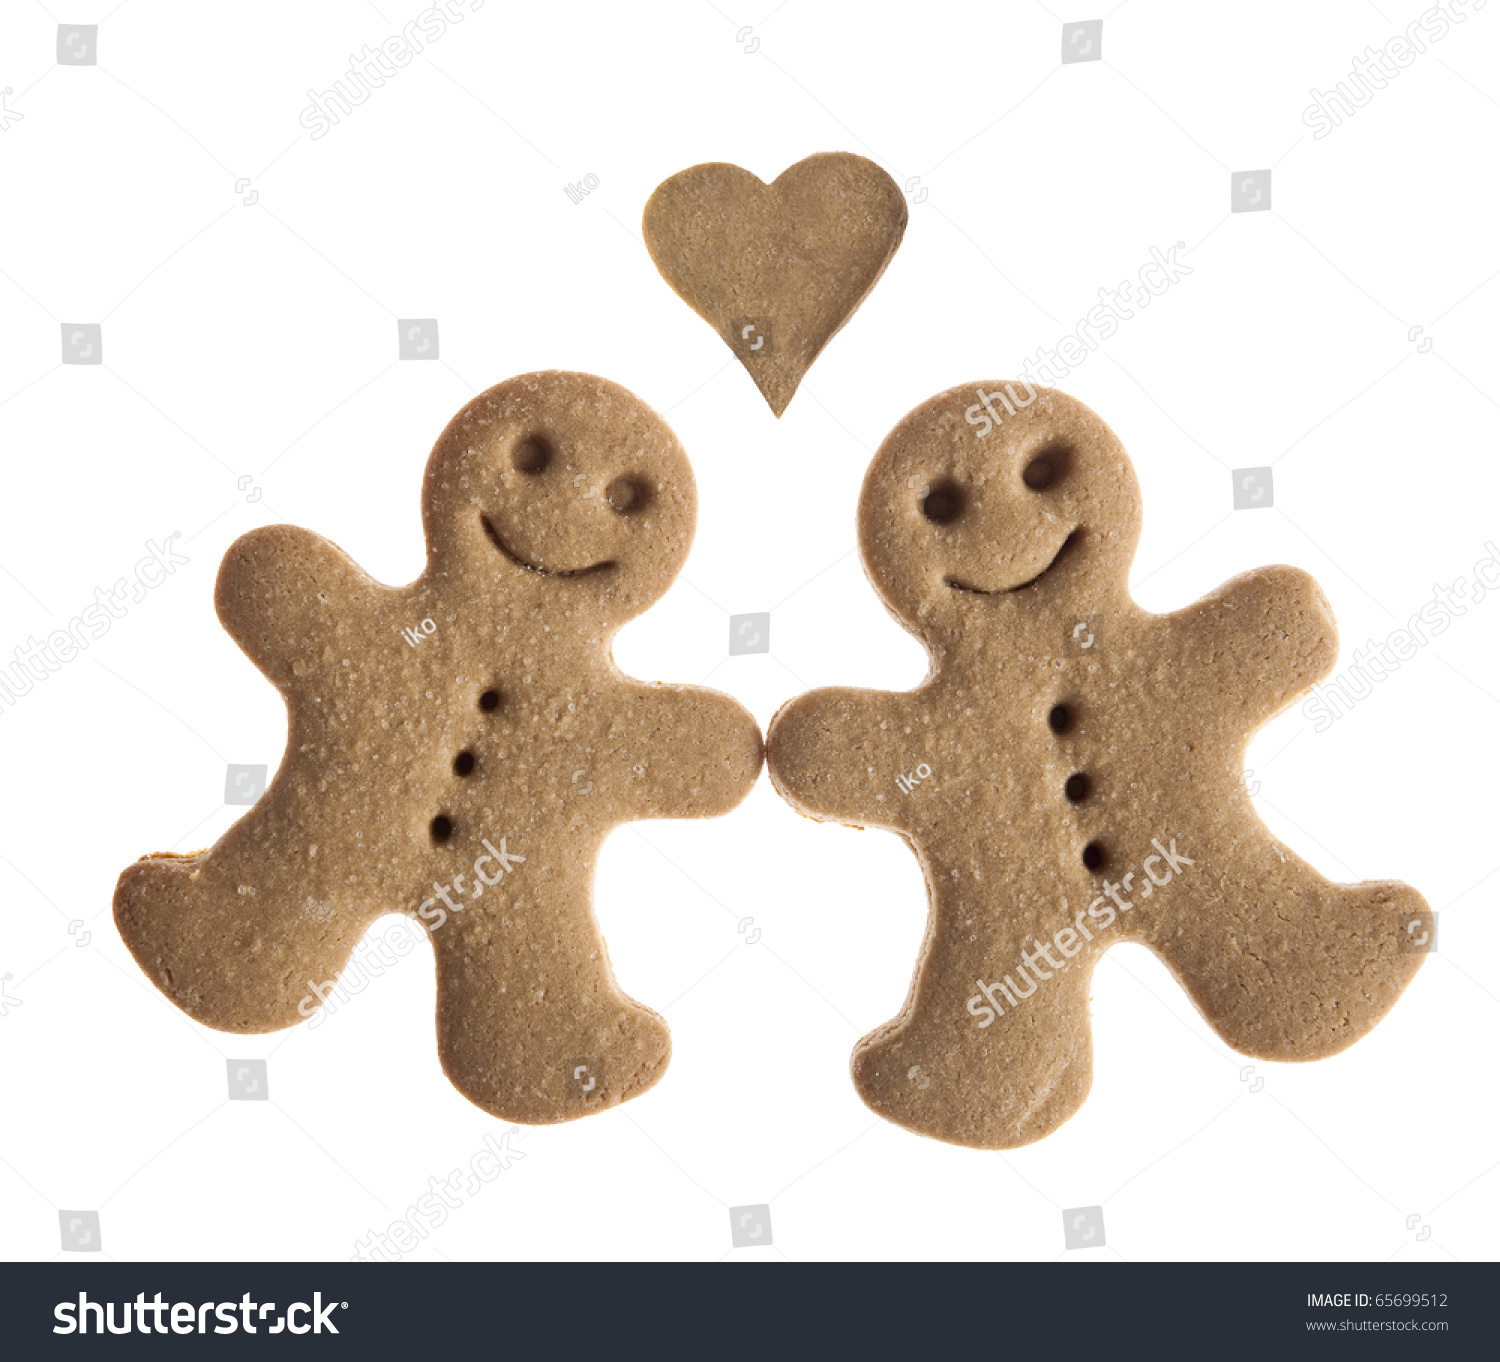 how to make homemade gingerbread man cookies